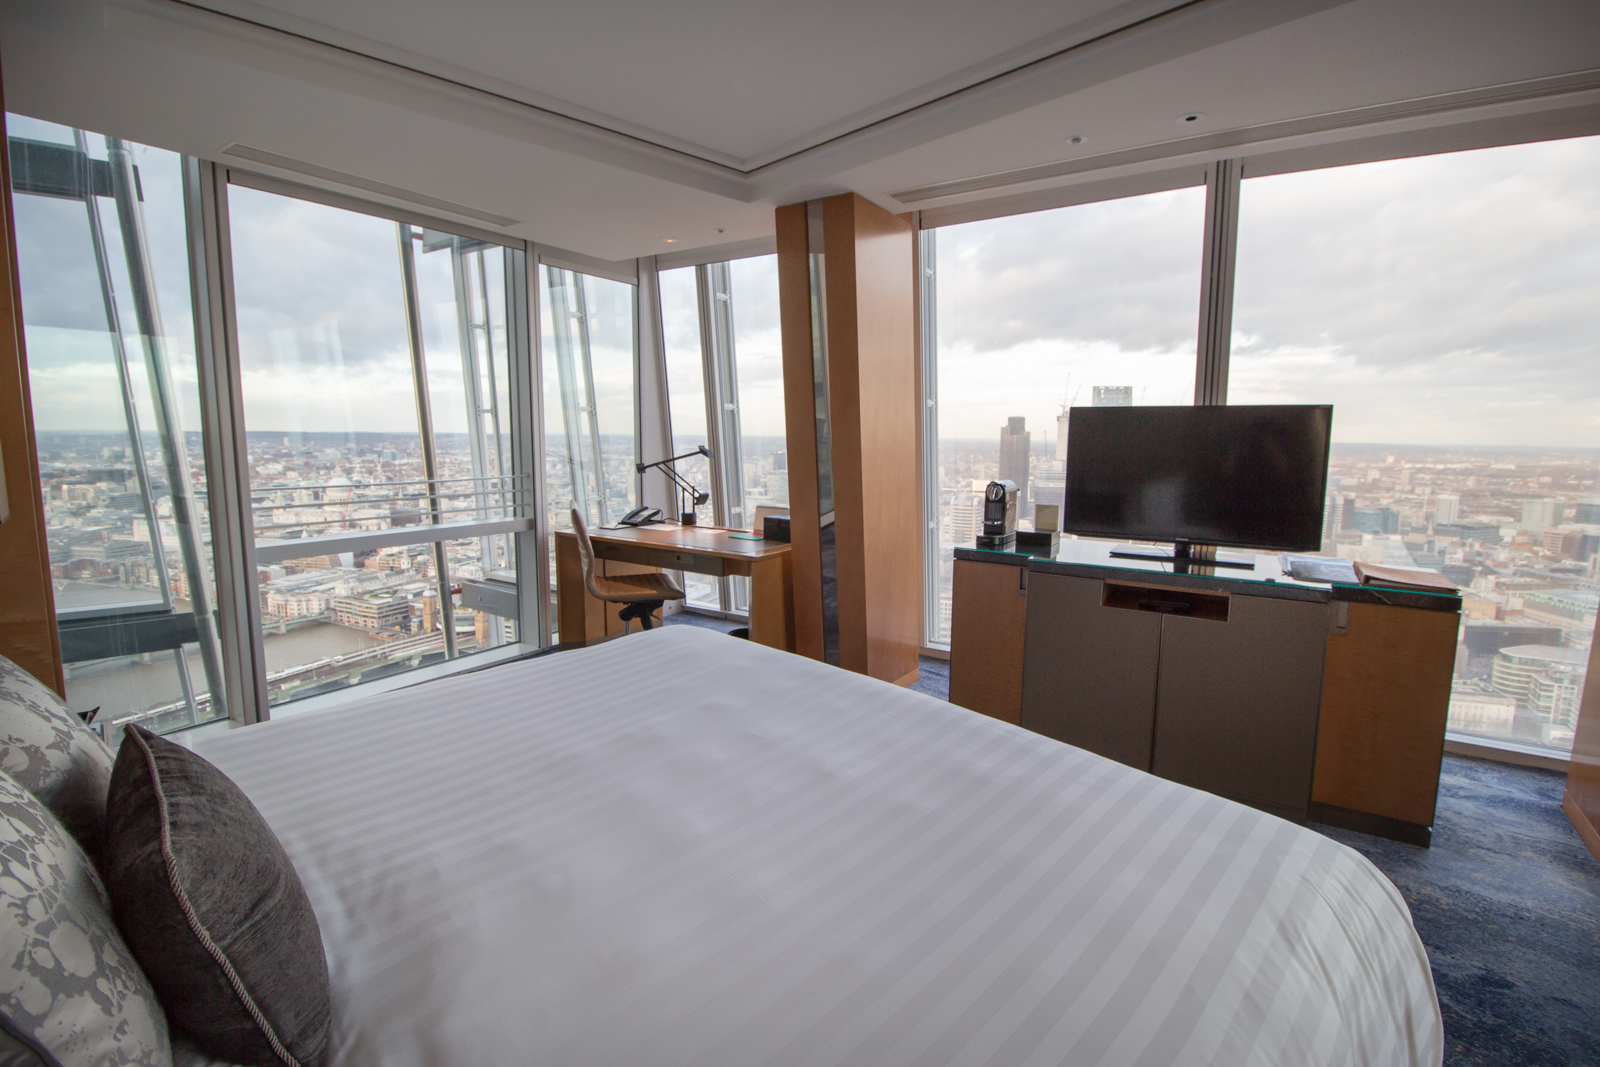 shangri-la at the shard hotel review blog London iconic city view room